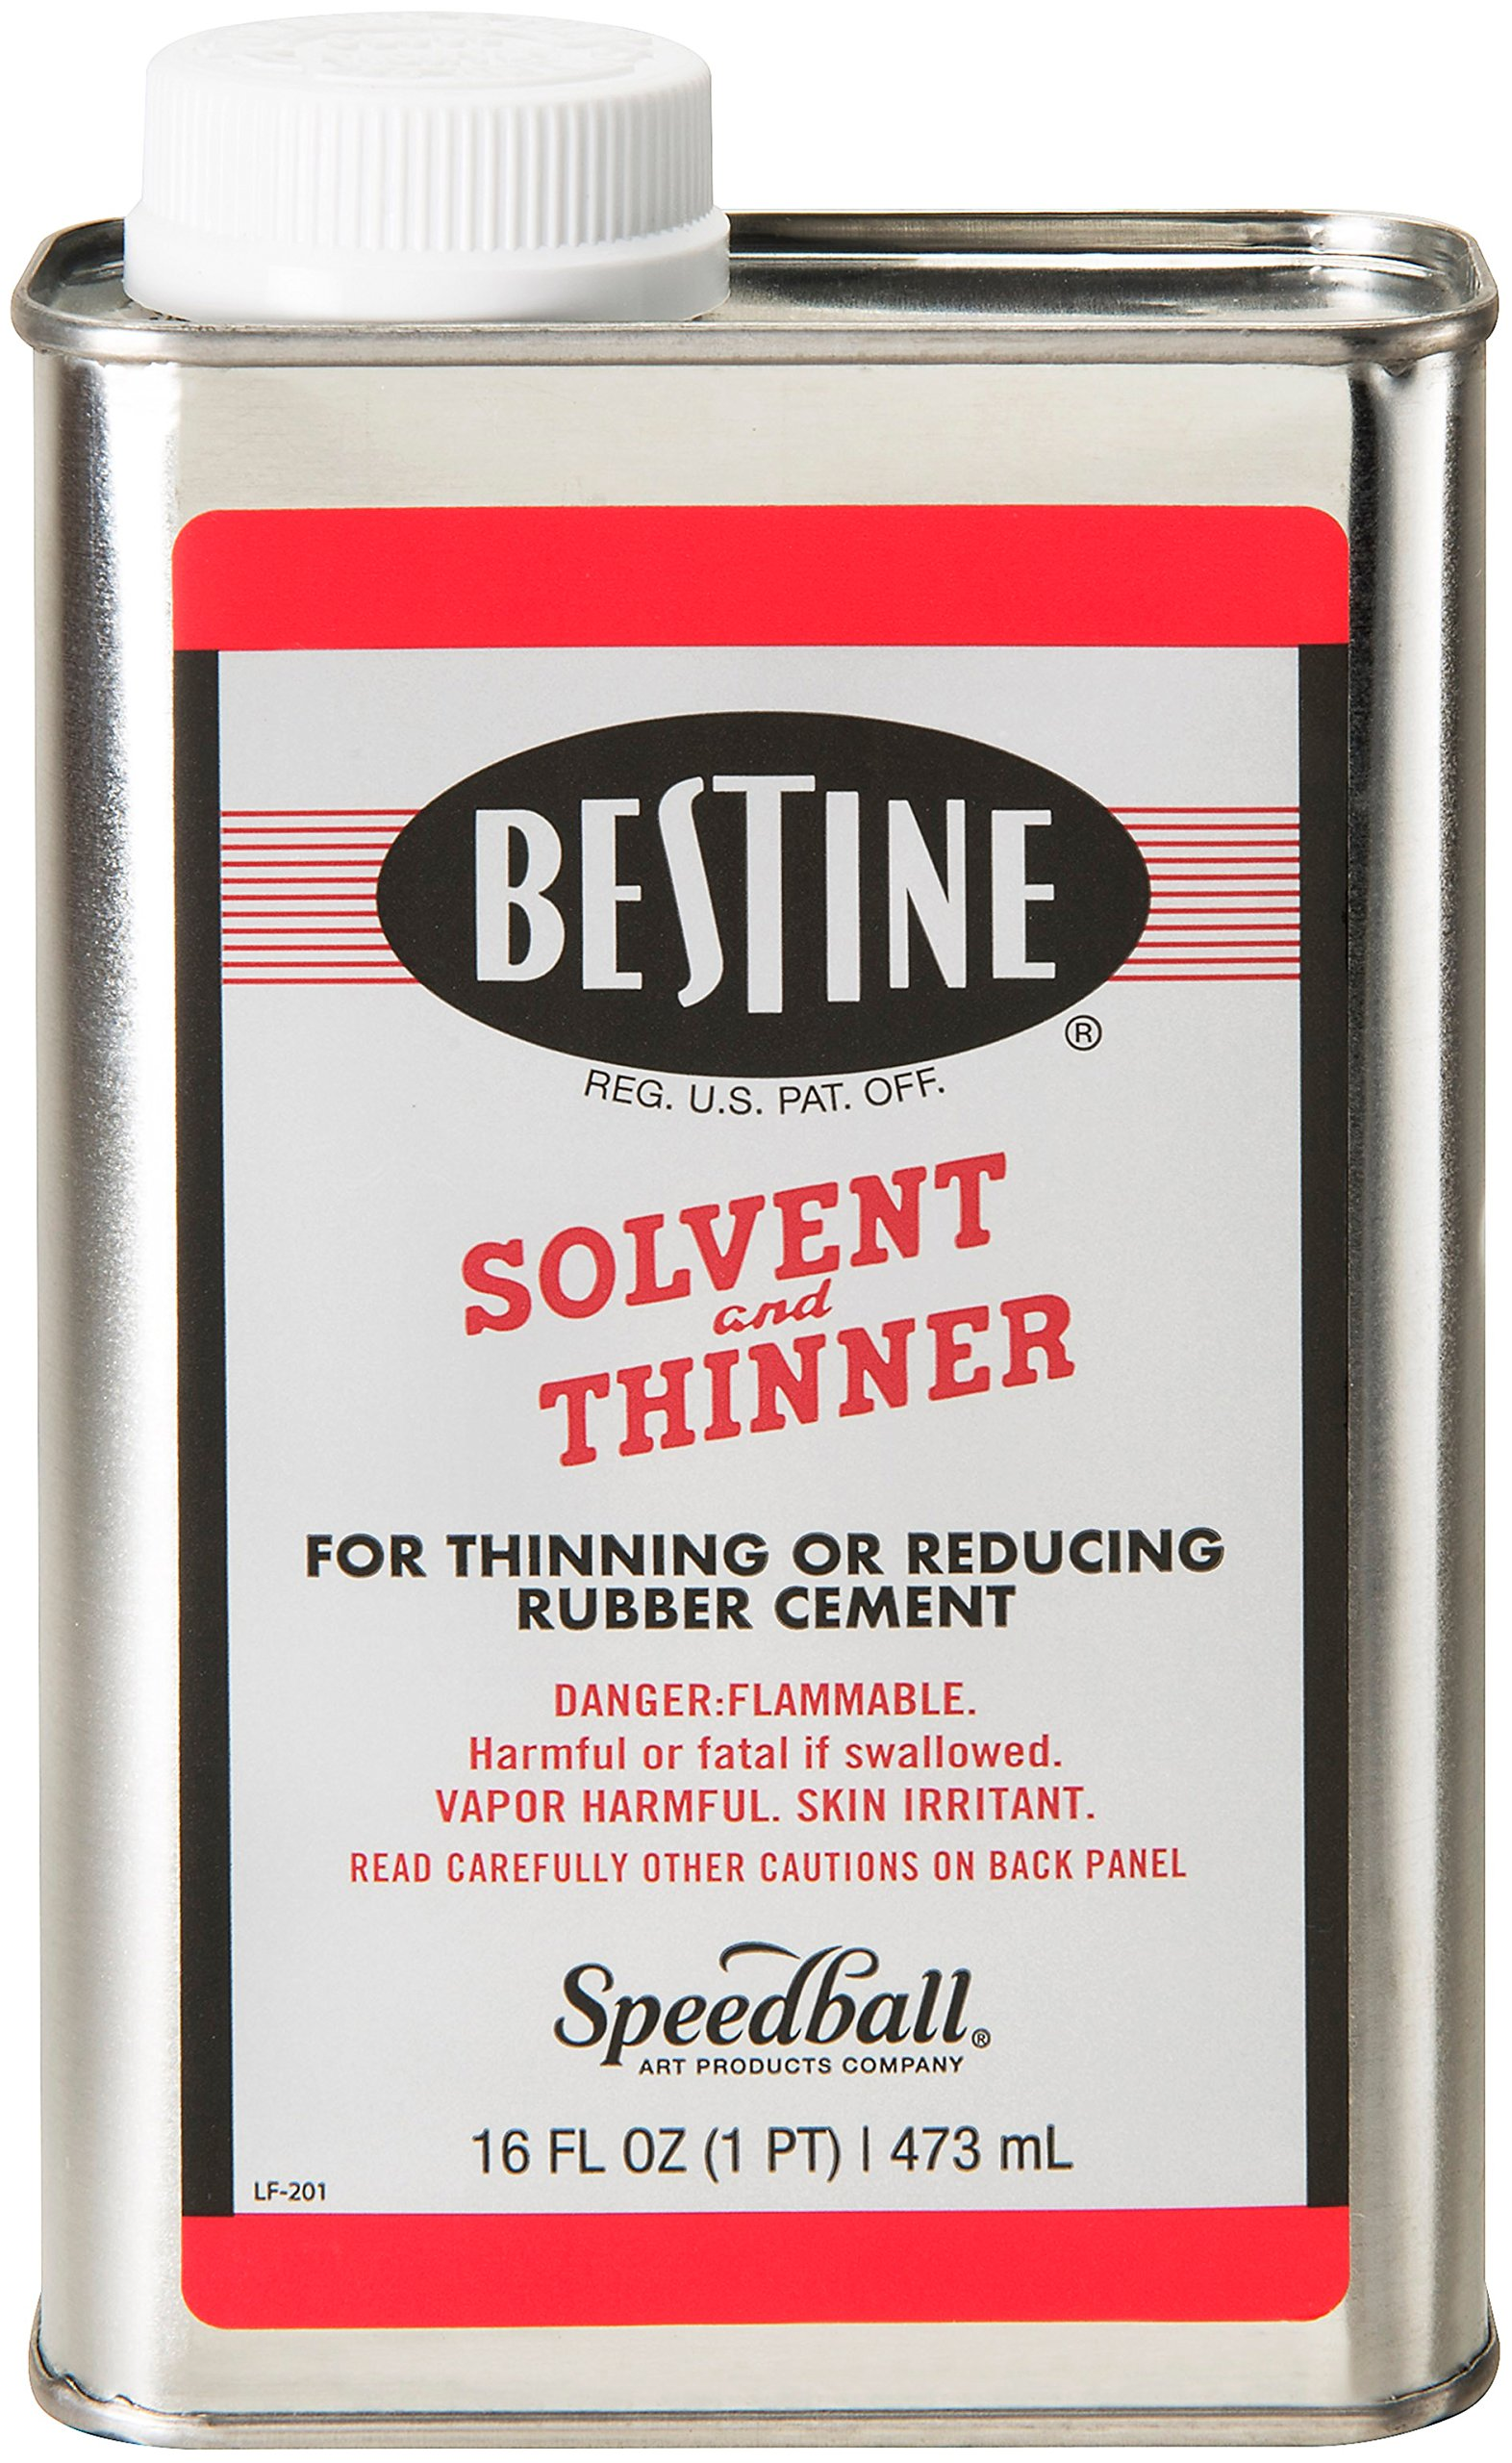 Bestine Solvent and Thinner for Rubber Cement - Cleans Ink, Adhesive and Parts, 16 Ounce Can by BESTINE